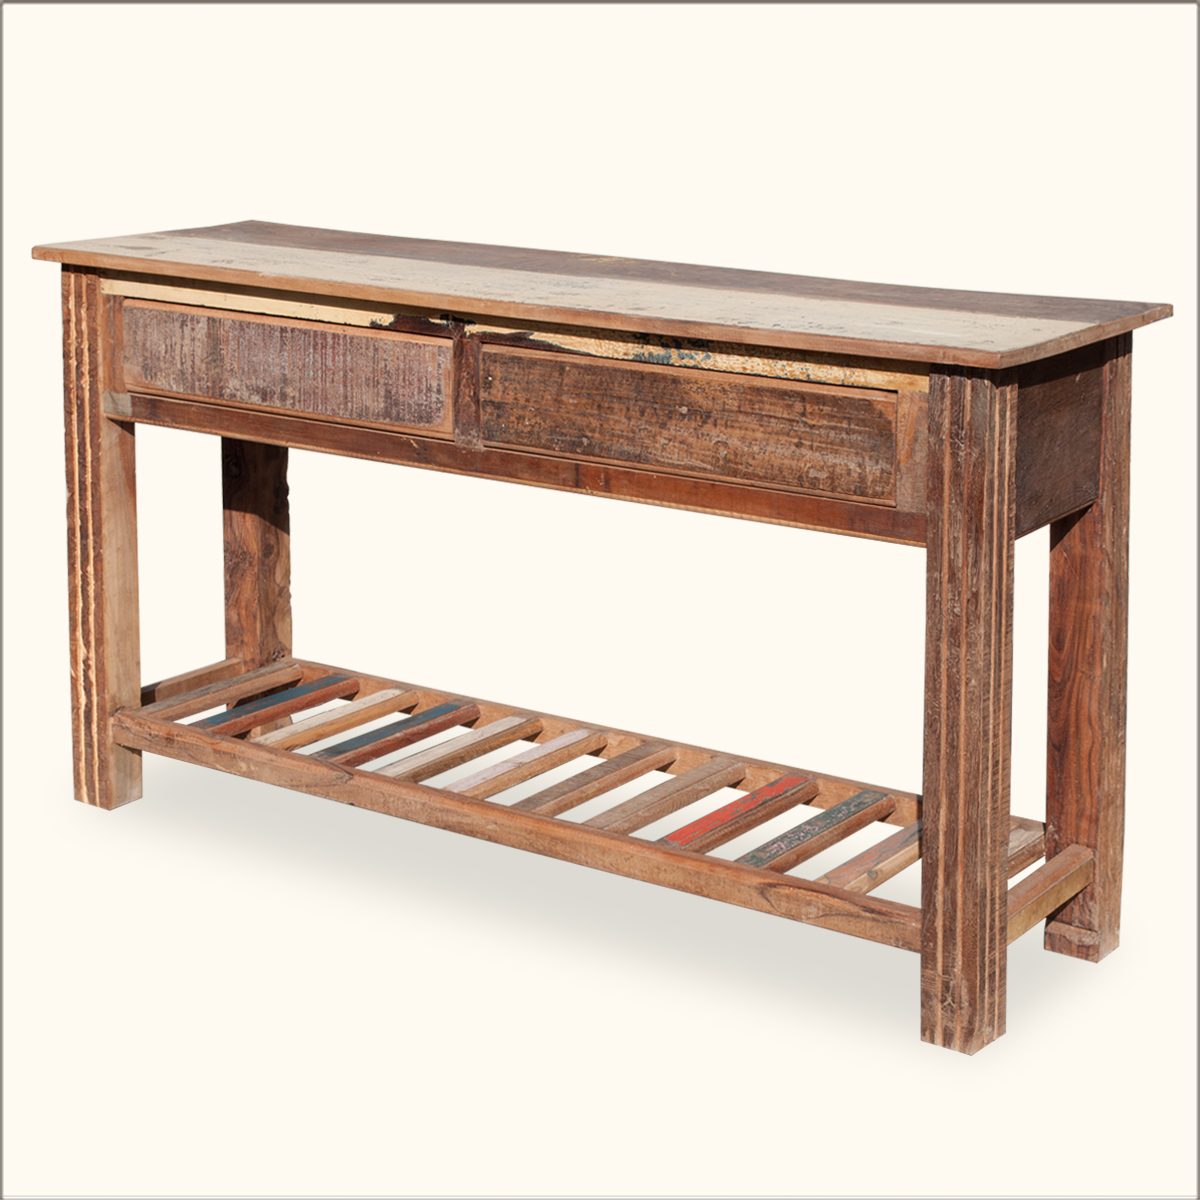 Rustic reclaimed wood 2 tier storage drawer console foyer Console tables with storage